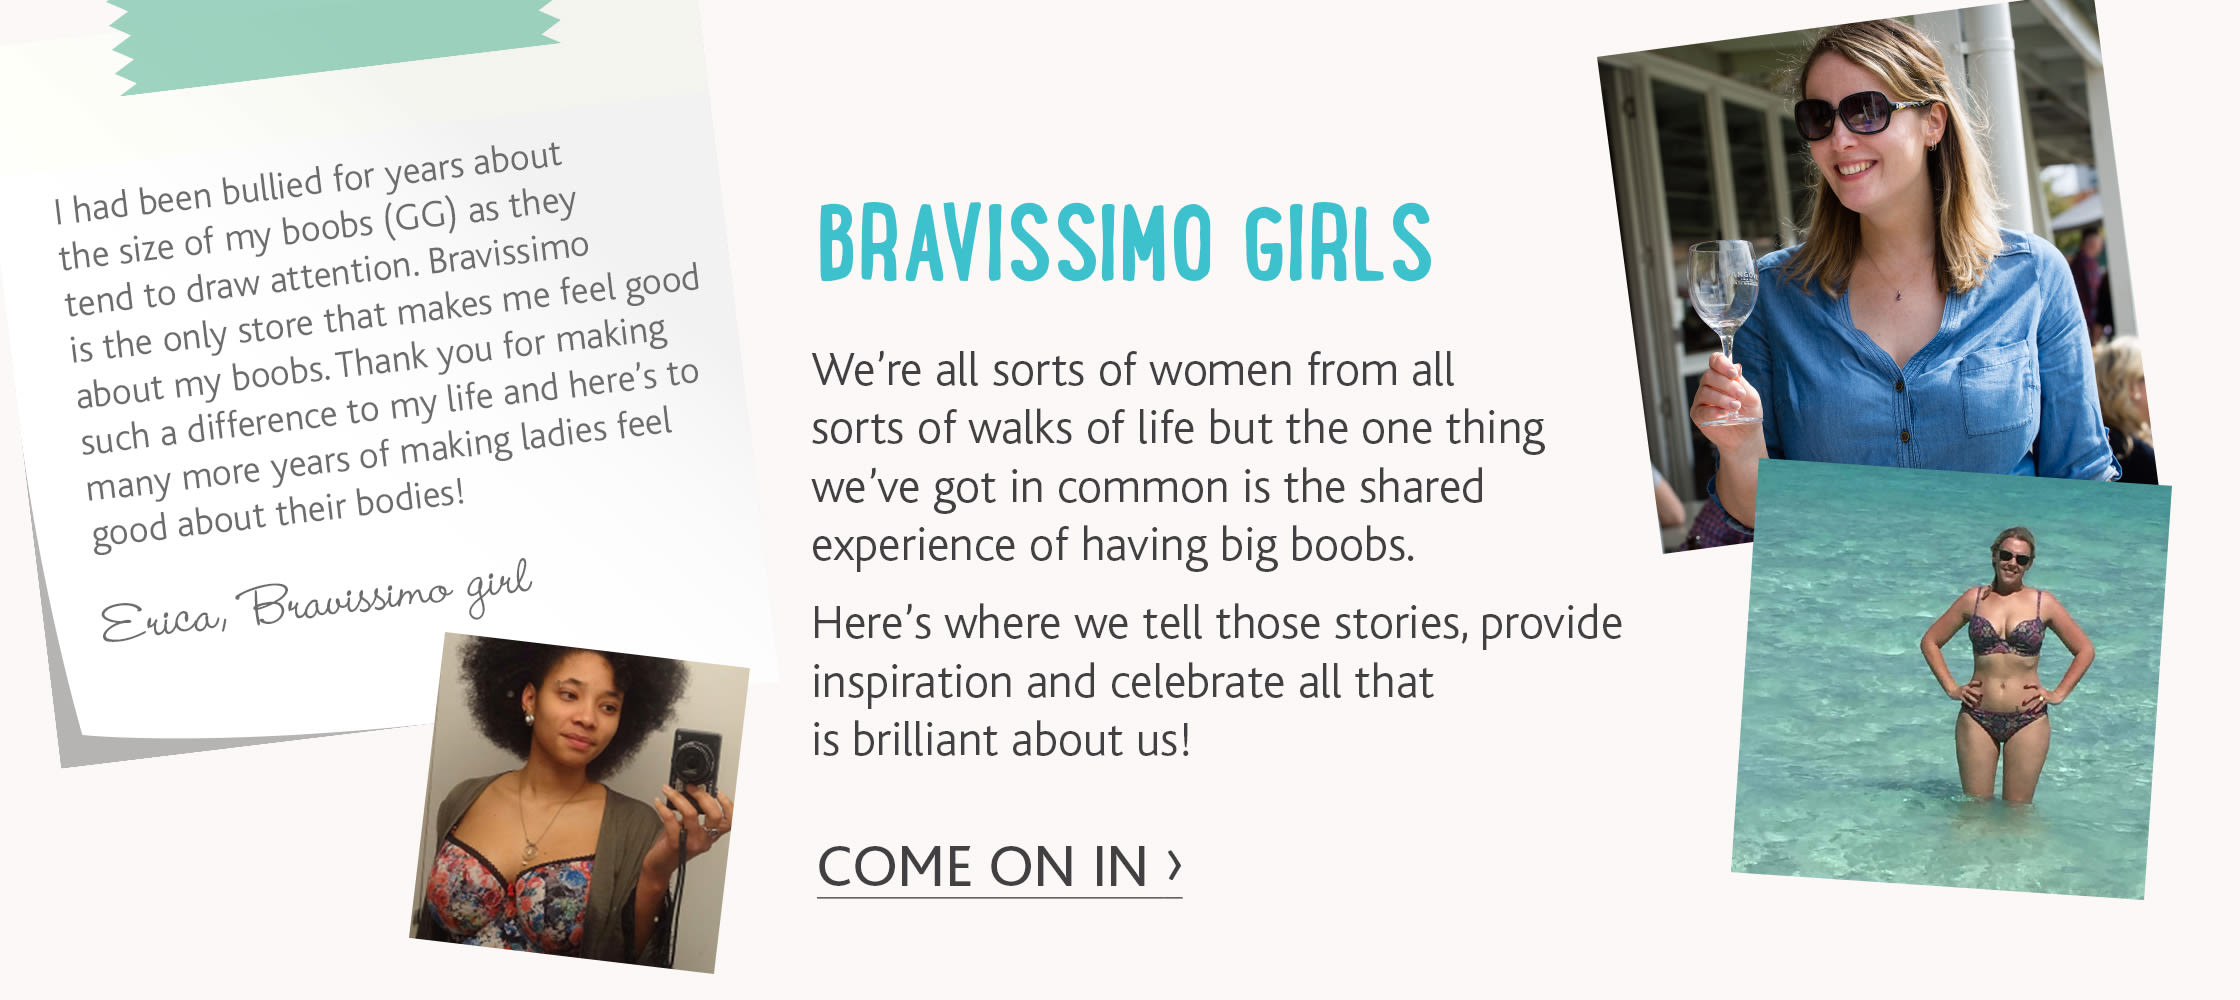 Meet Bravissimo Girls